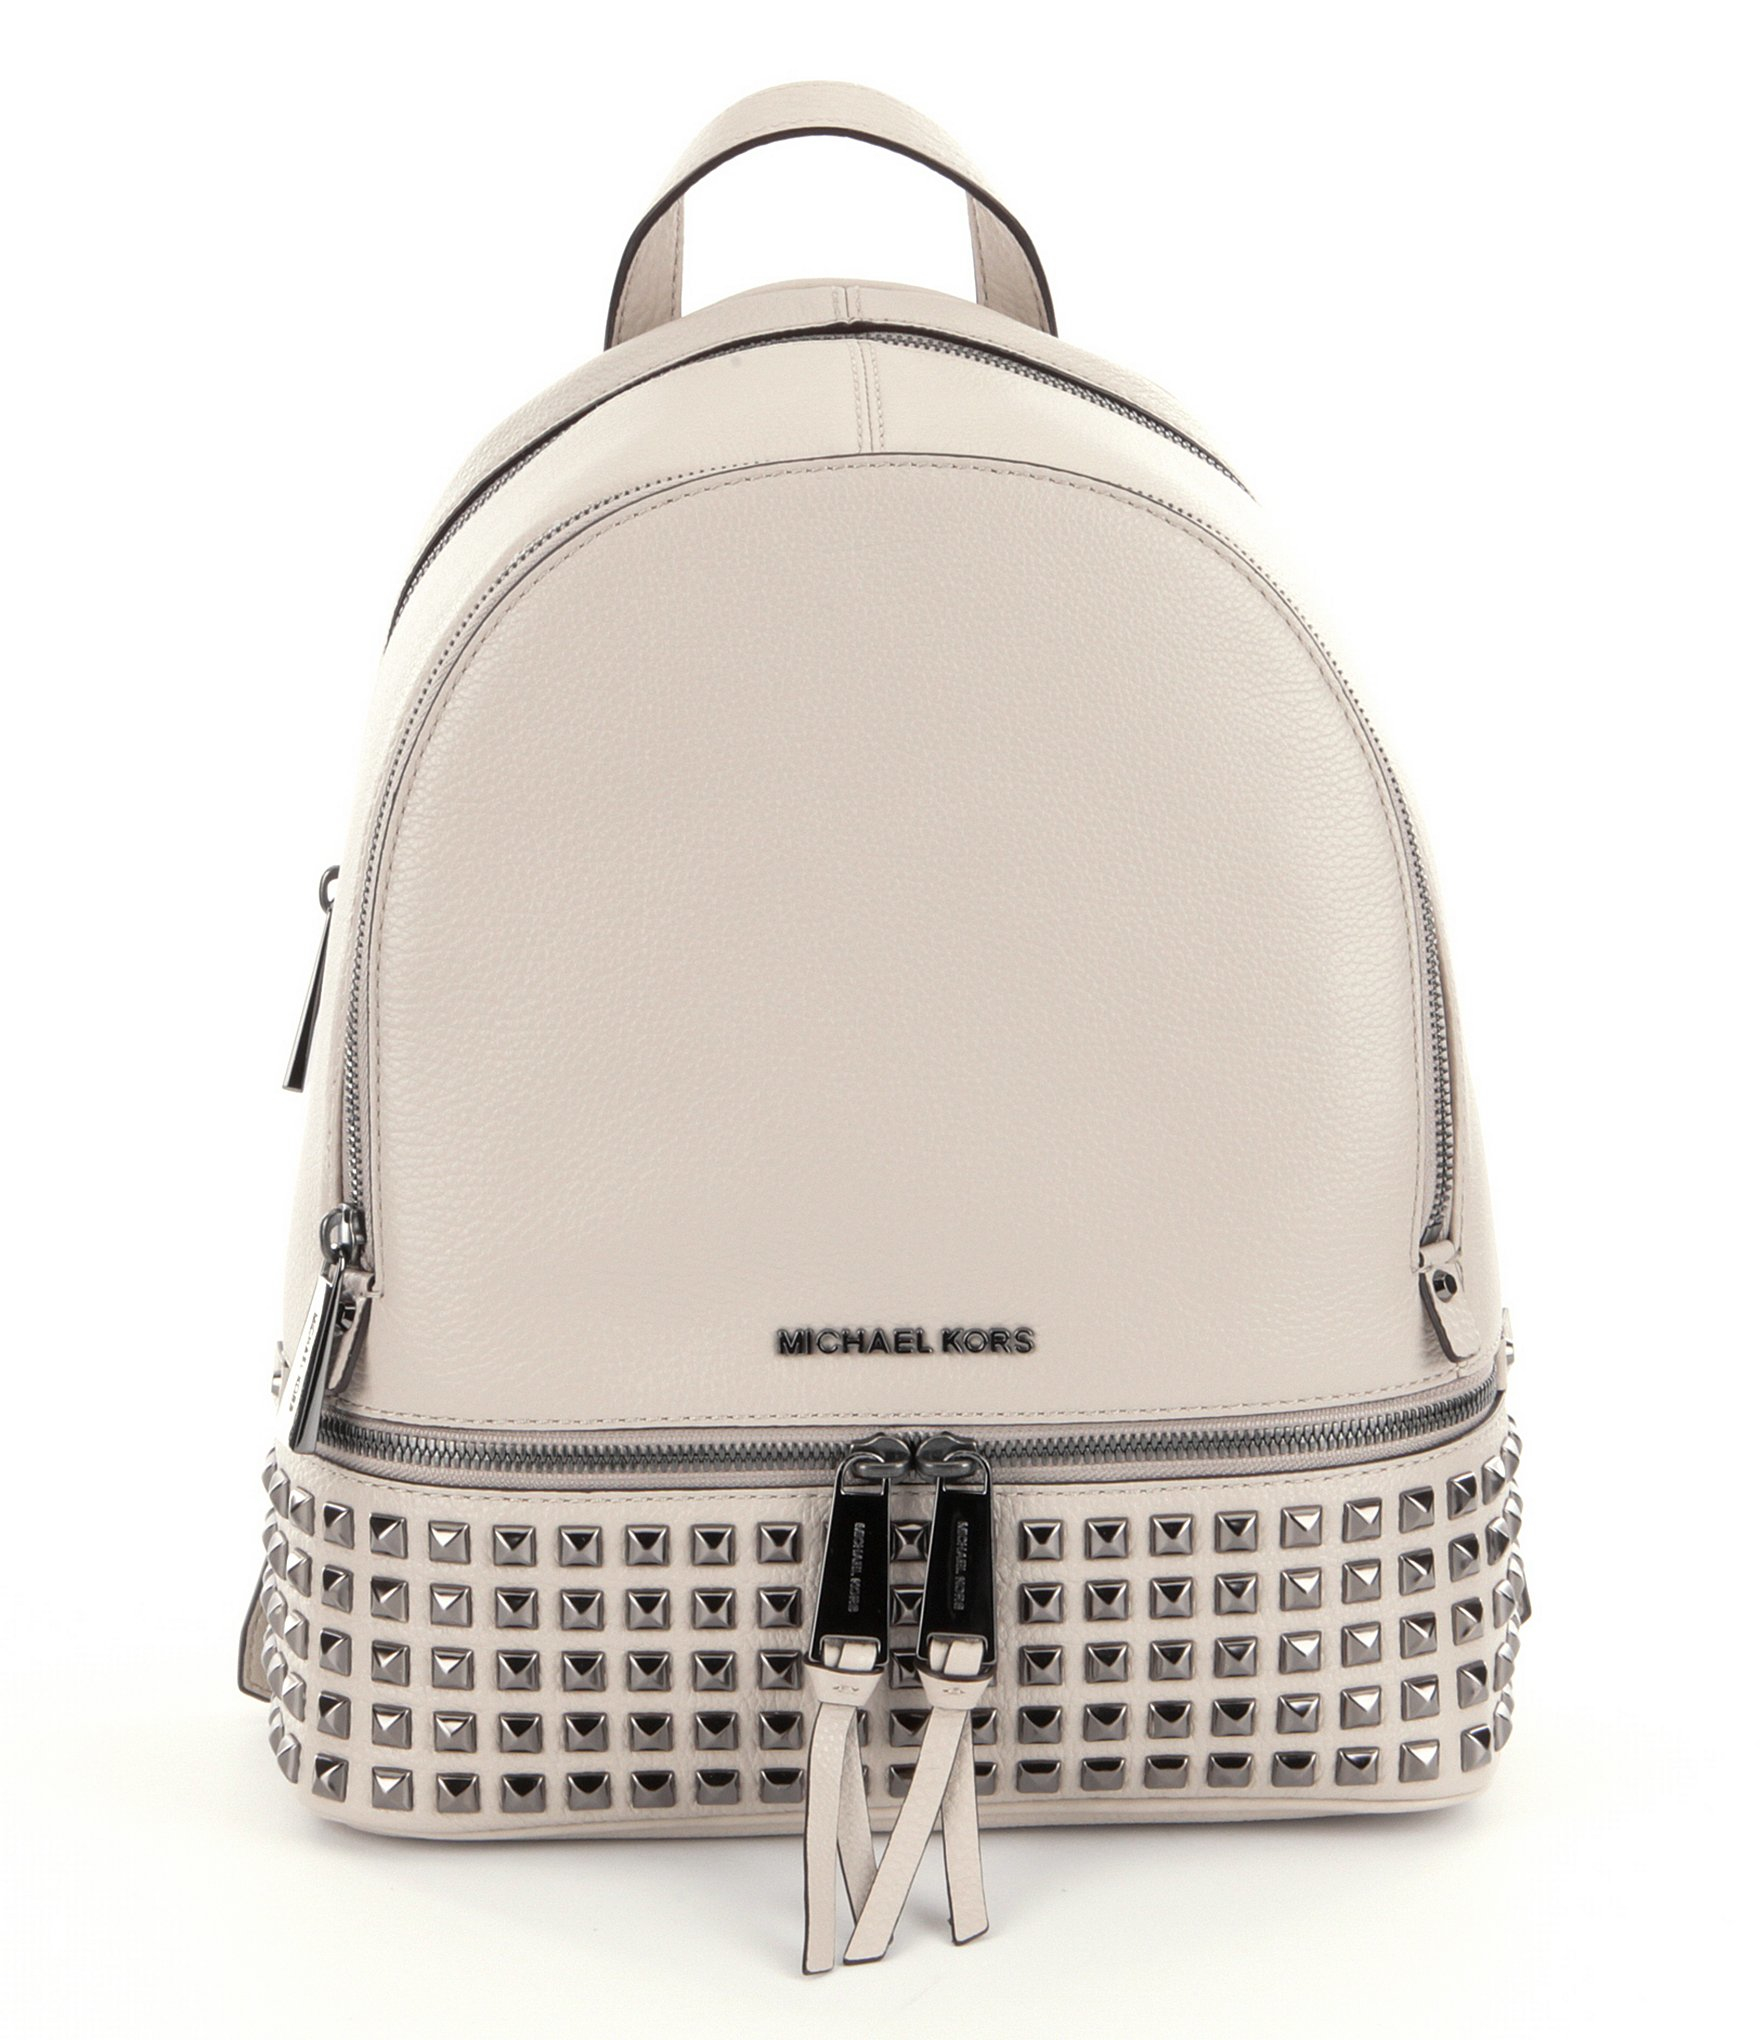 5613208e3b16 Lyst - MICHAEL Michael Kors Rhea Studded Leather Medium Backpack in ...